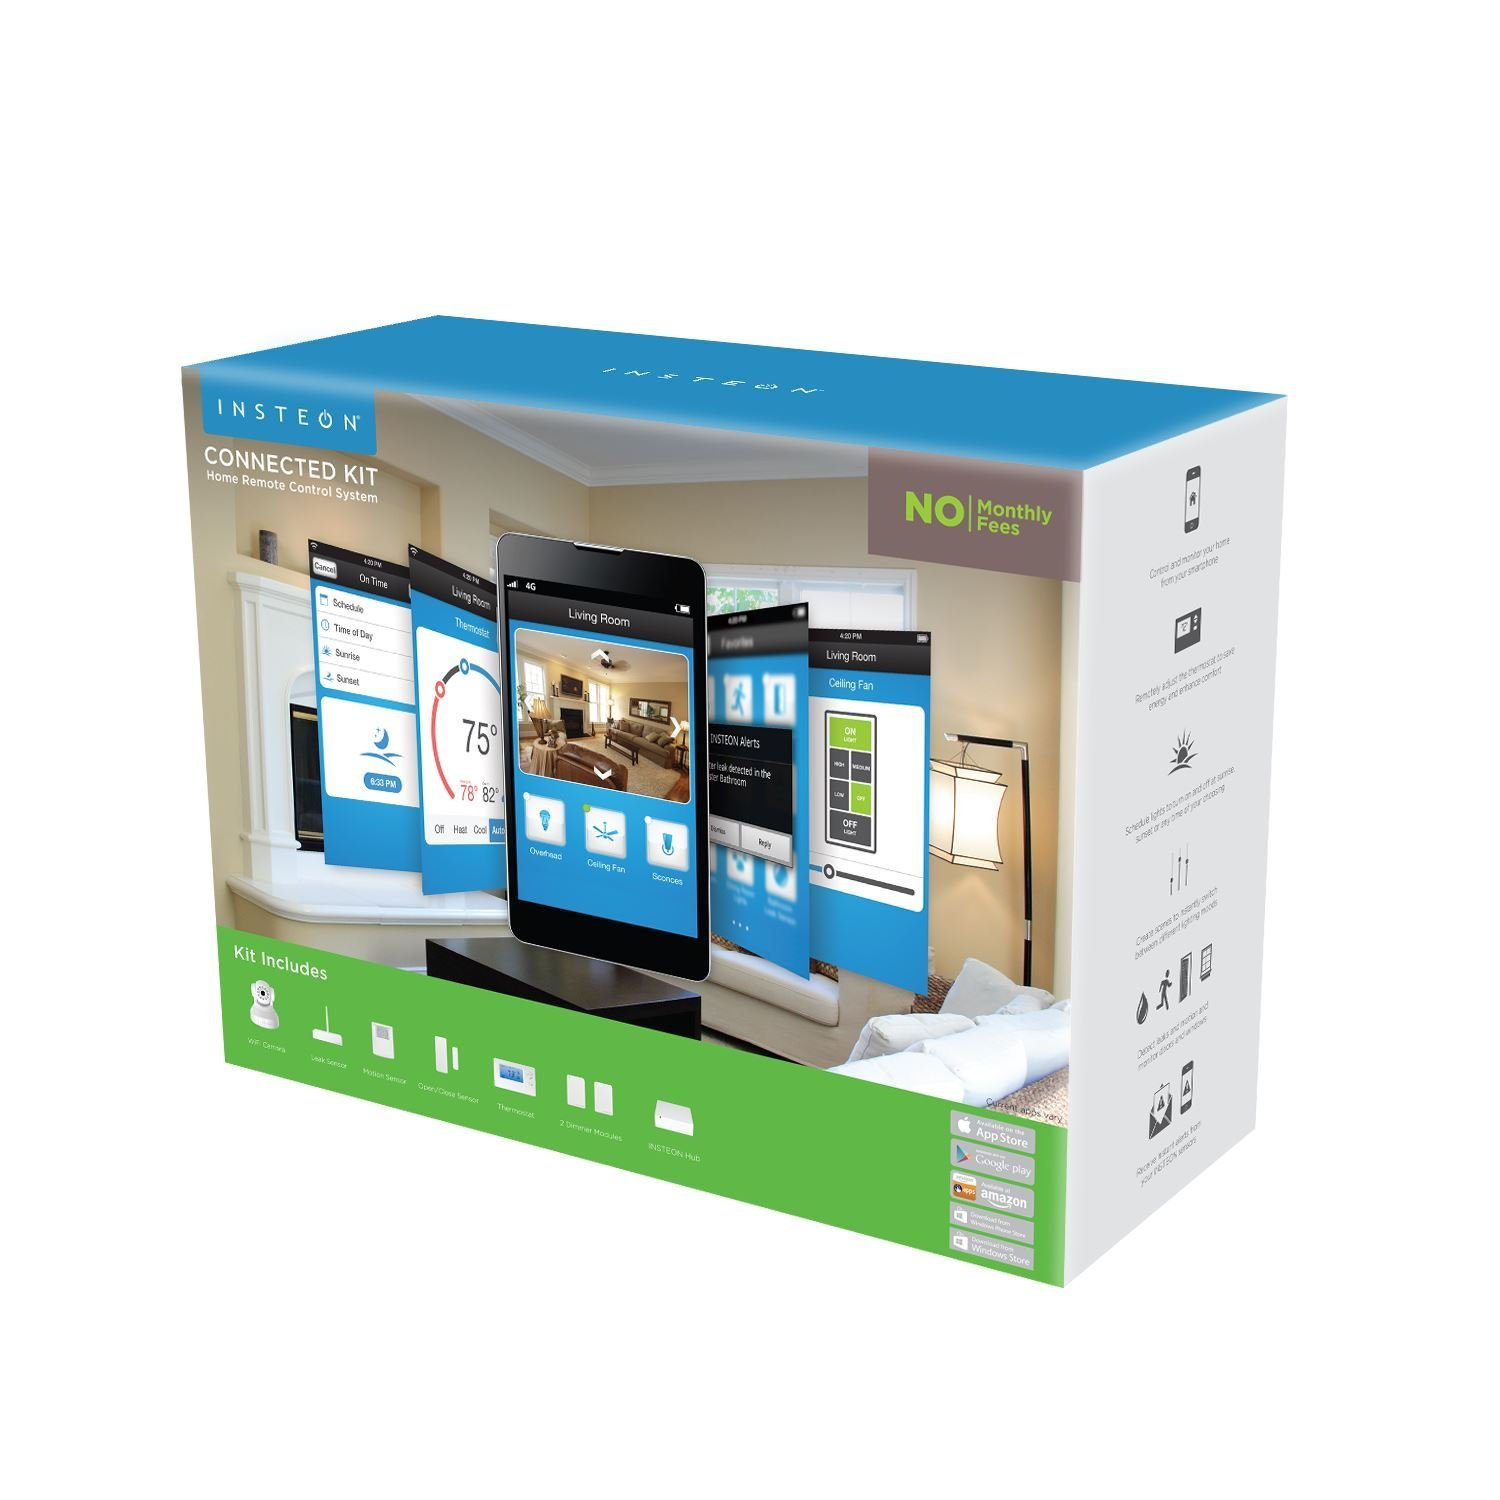 Insteon Connected Home Kit